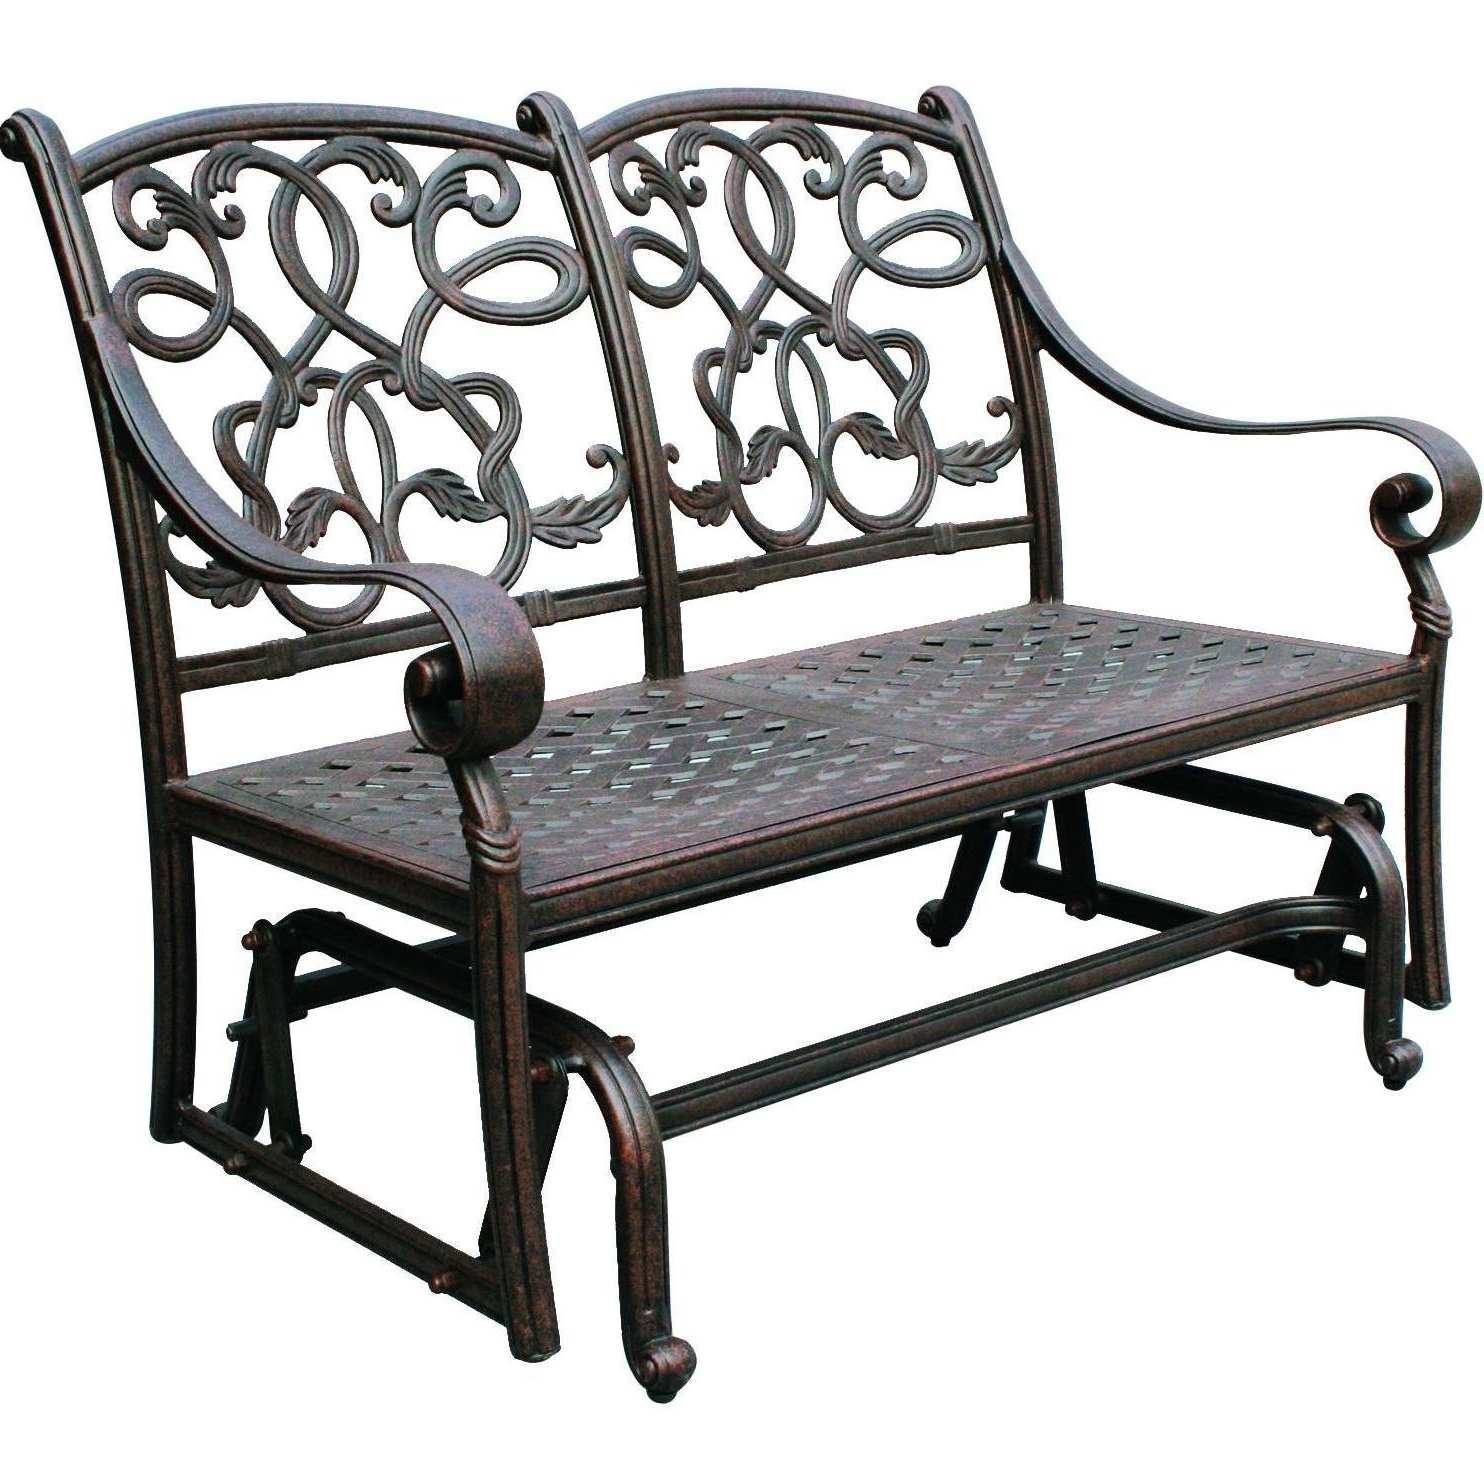 Most Popular Decorating: Your Porch And Patio Never Been The Same With With Outdoor Retro Metal Double Glider Benches (Gallery 28 of 30)